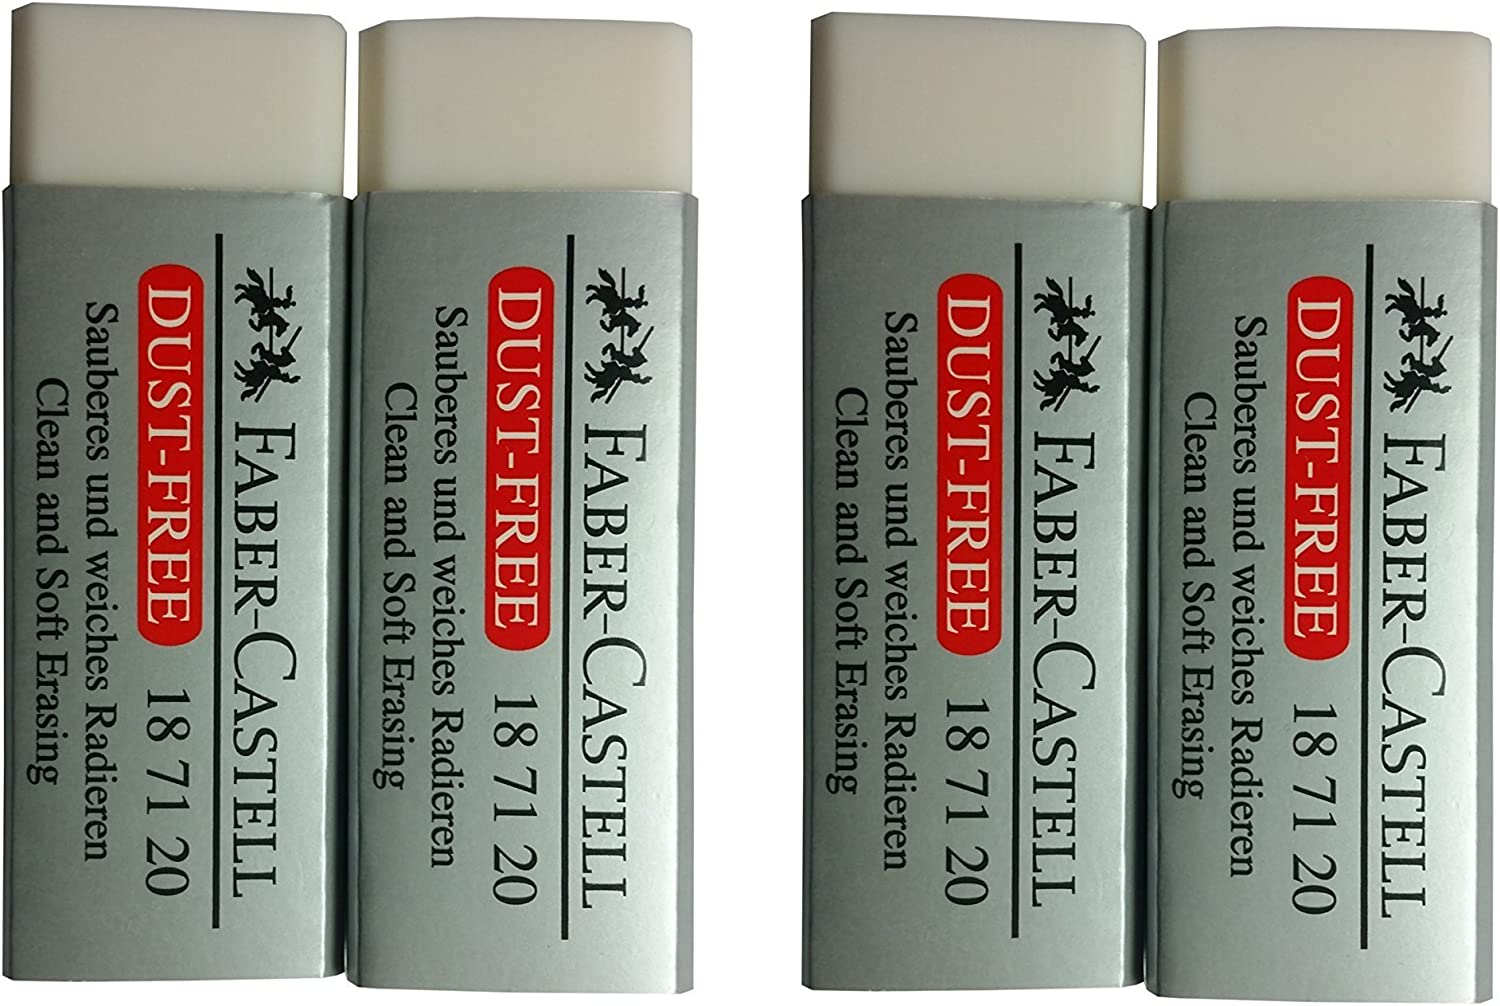 [Pack of 4] Faber-Castell LARGE Pencil Eraser Dust Free Clean and Extra Soft Erasing for ART, OFFICE, SCHOOL USE (6.2x2x1.25cm)